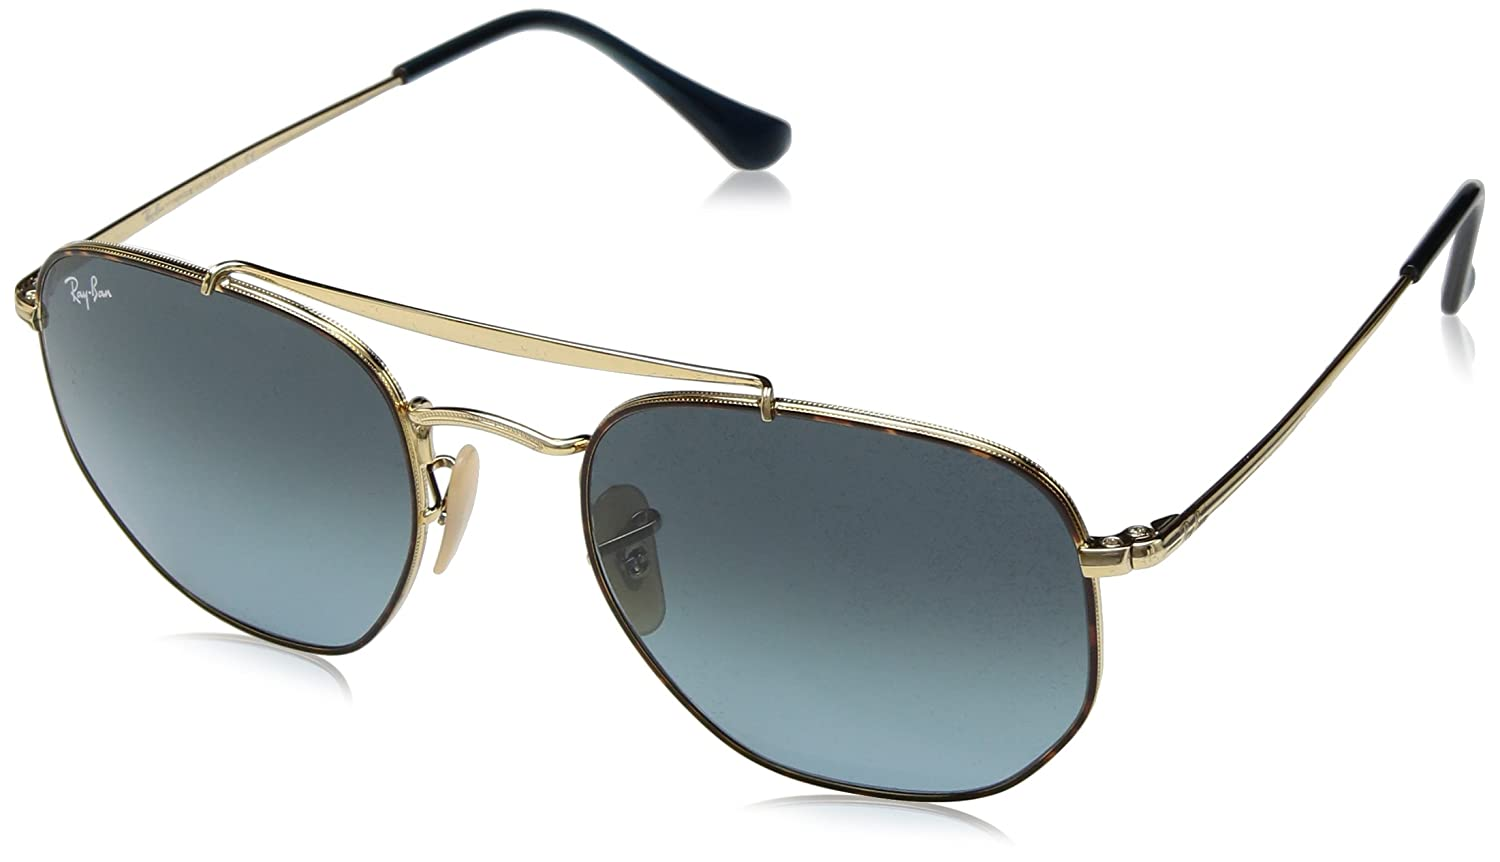 Amazon.com: Ray-Ban RB3648 Marshall Aviator - Gafas de sol ...